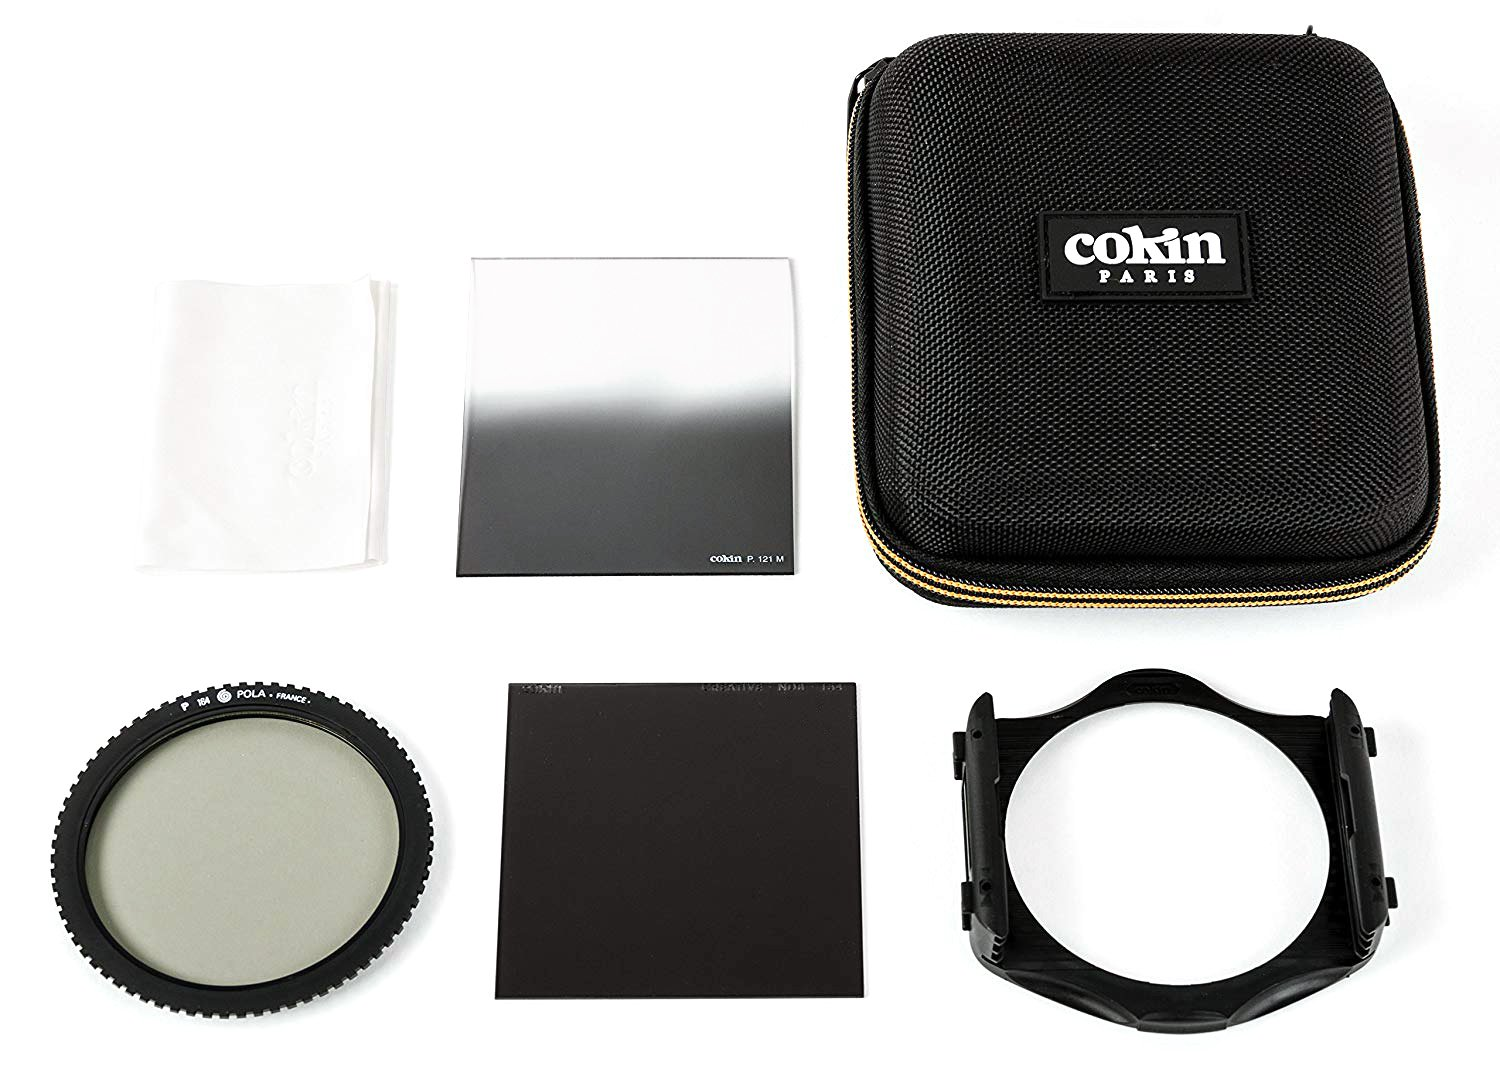 Cokin Square Filter Traveller Creative Kit - Includes M (P) Series Filter Holder, Circular Polarizer (P164), ND8 3-Stop (P154), ND4 2-Stop Hard (P121M), Filter Wallet (M3068)